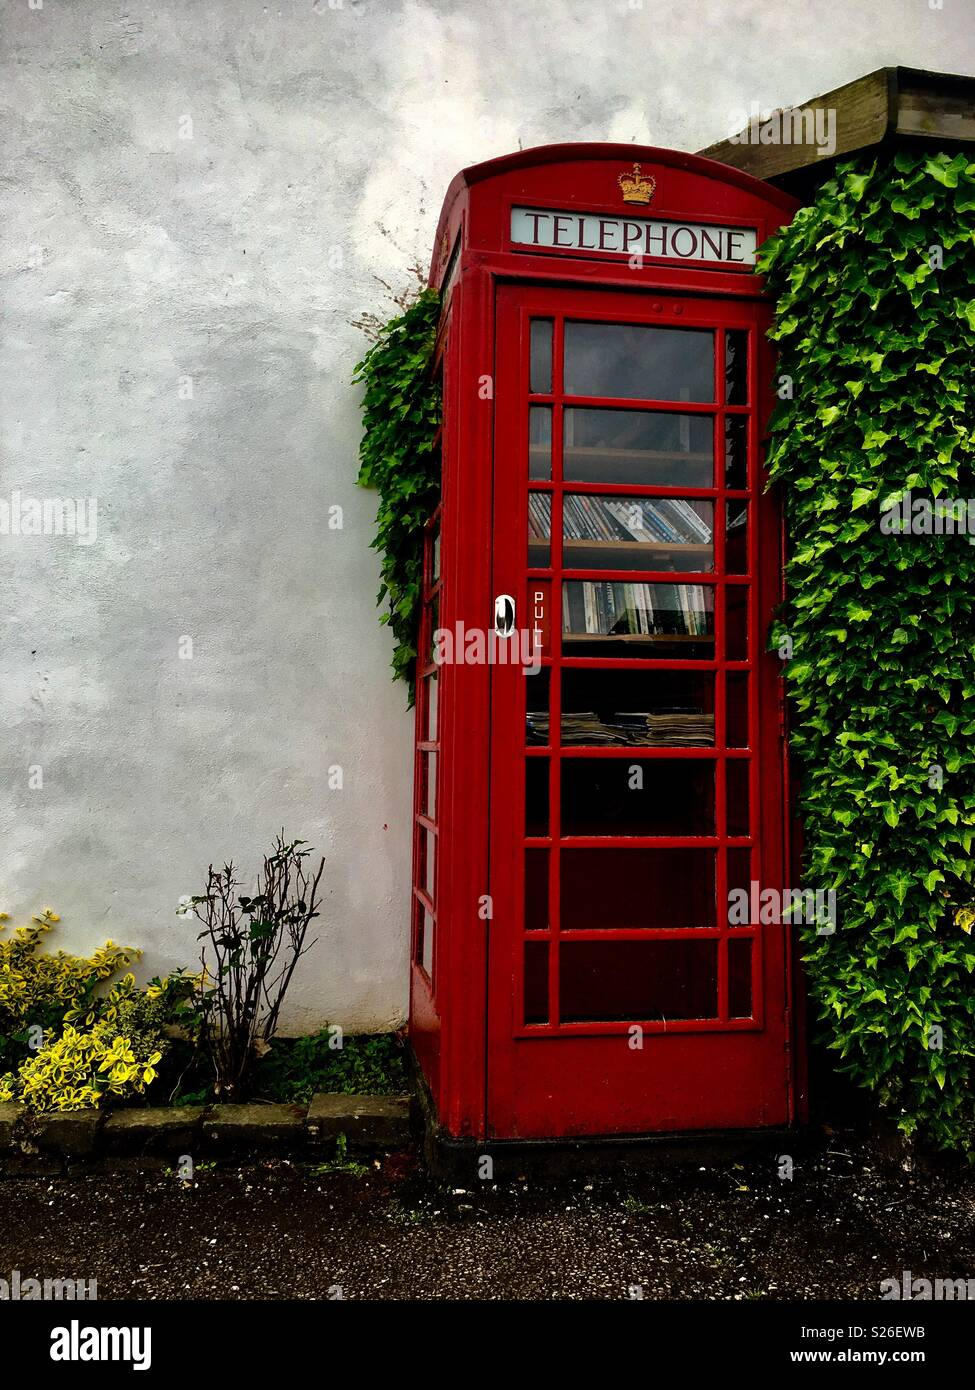 Phone Booth Lake District Inghilterra Immagini Stock